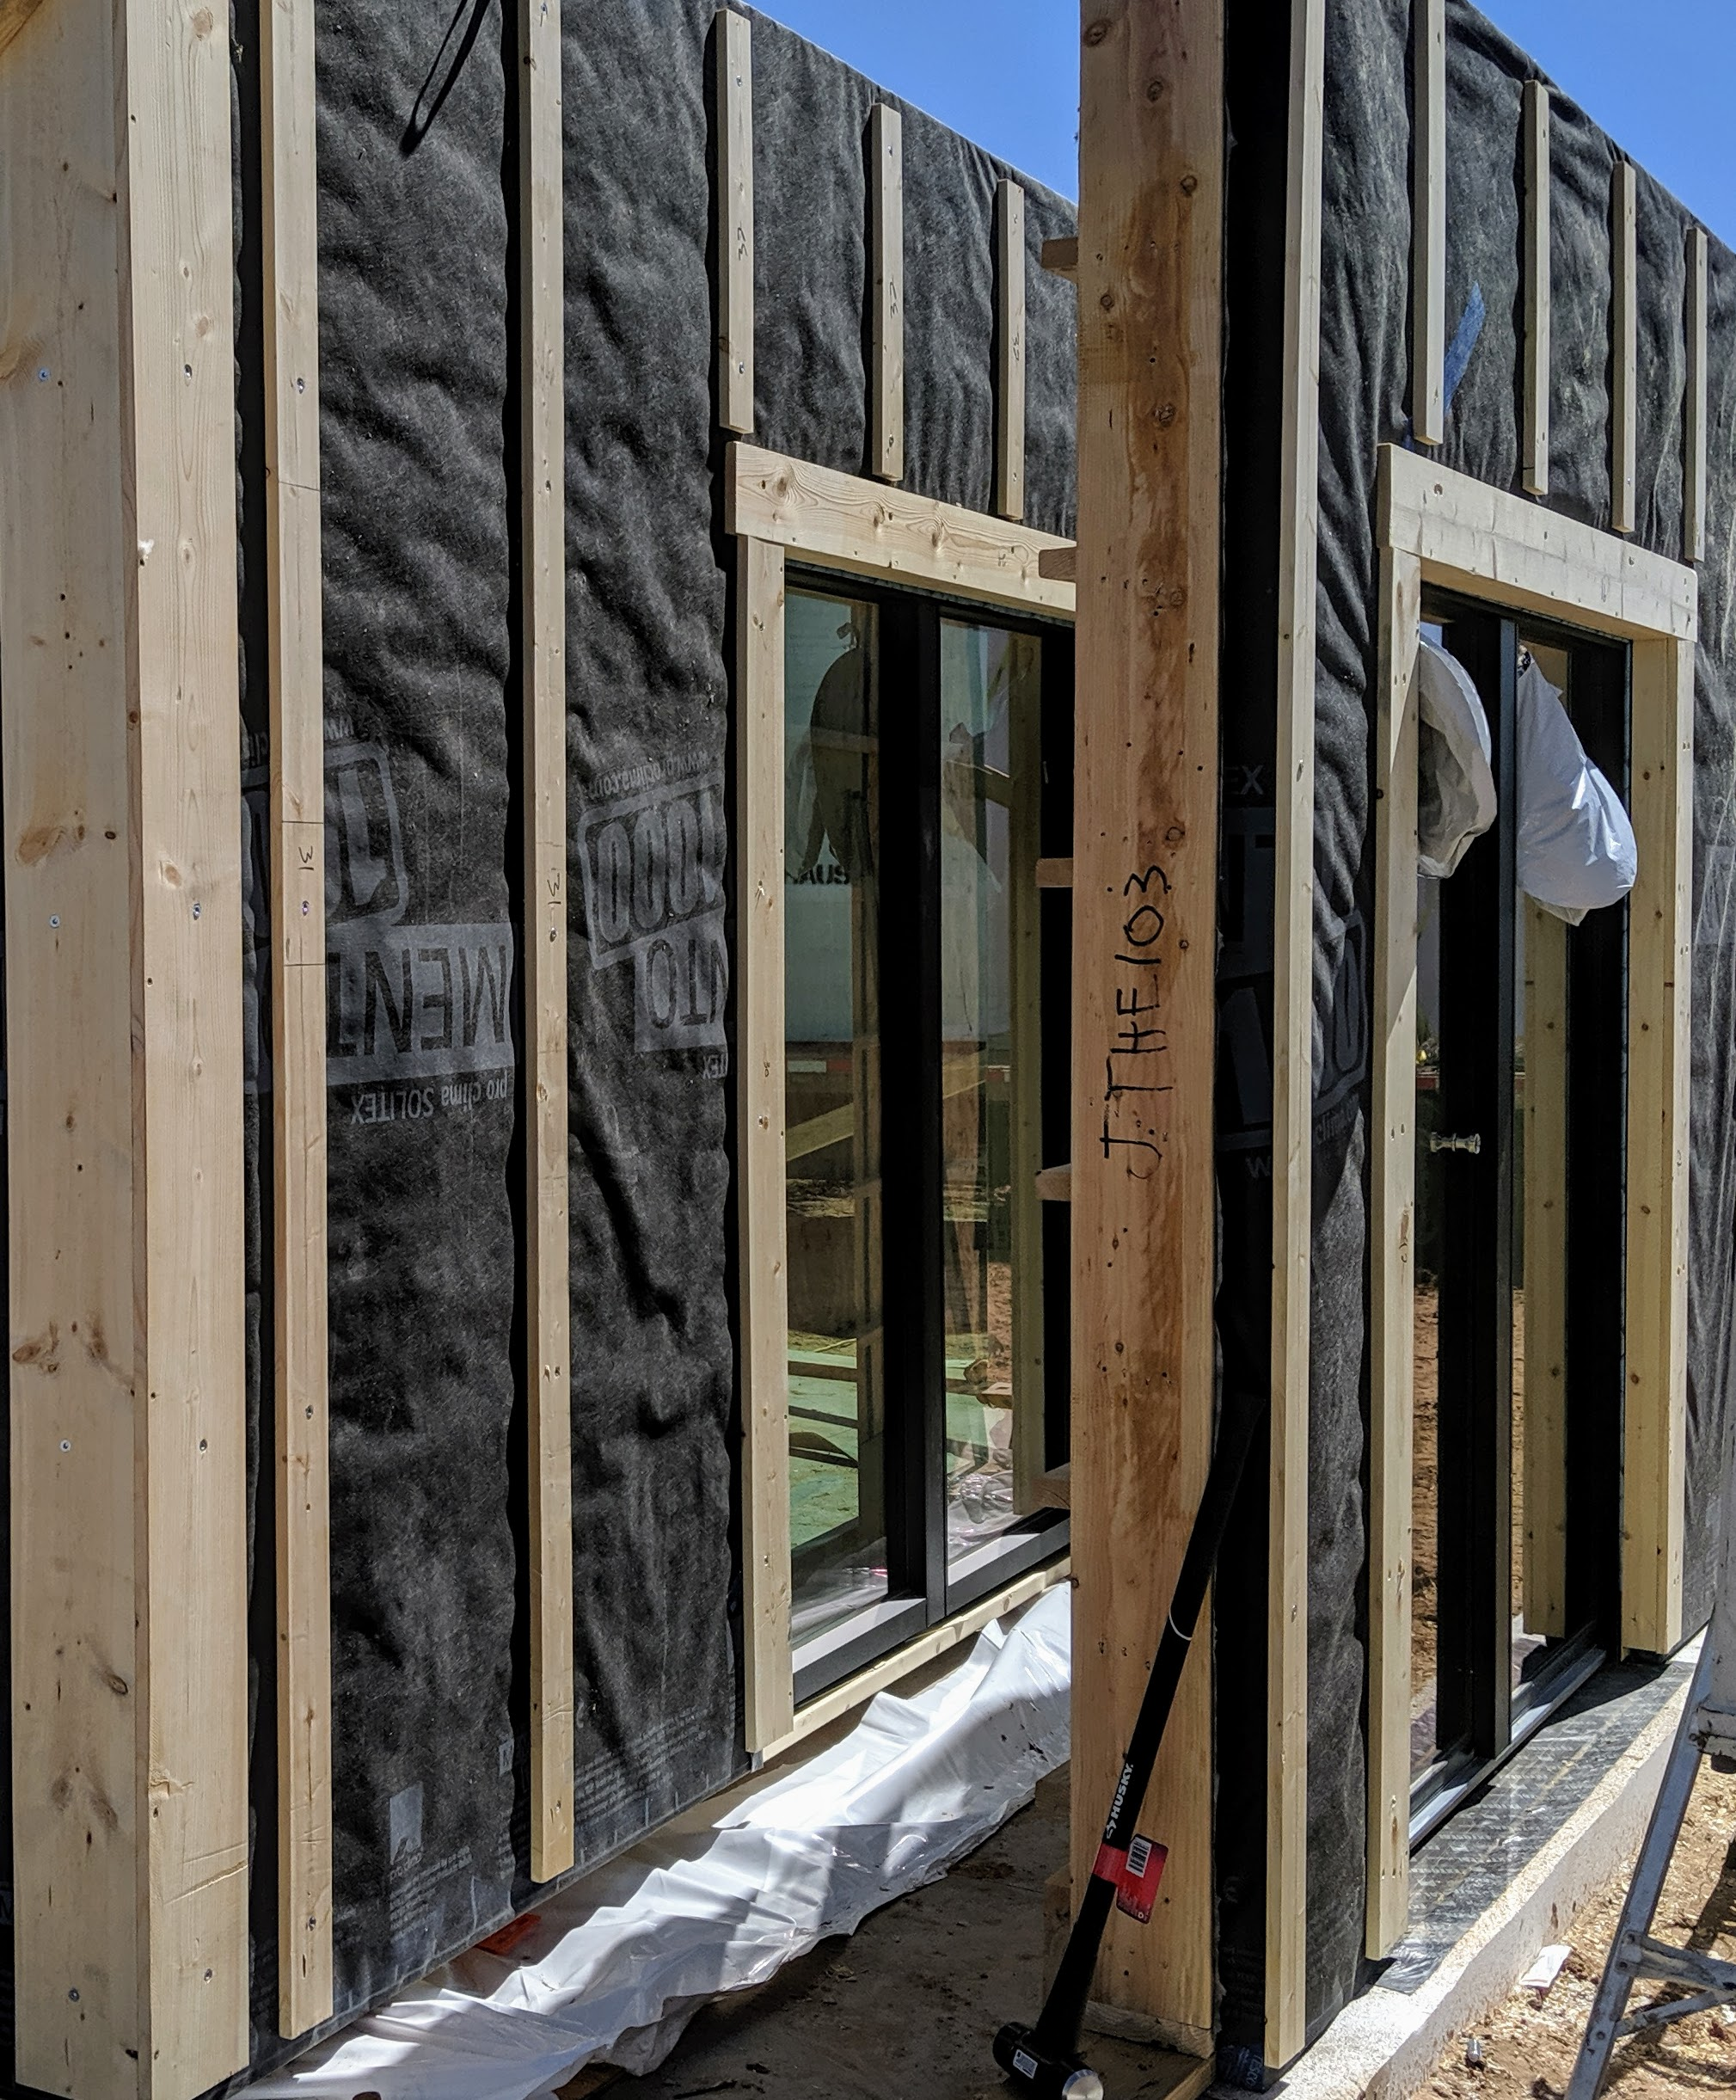 Upgrade to Wood Aluminum Clad Windows & Doors - Pre-installed, triple-pane, climate adjusted for comfort, Made in the U.S.A.